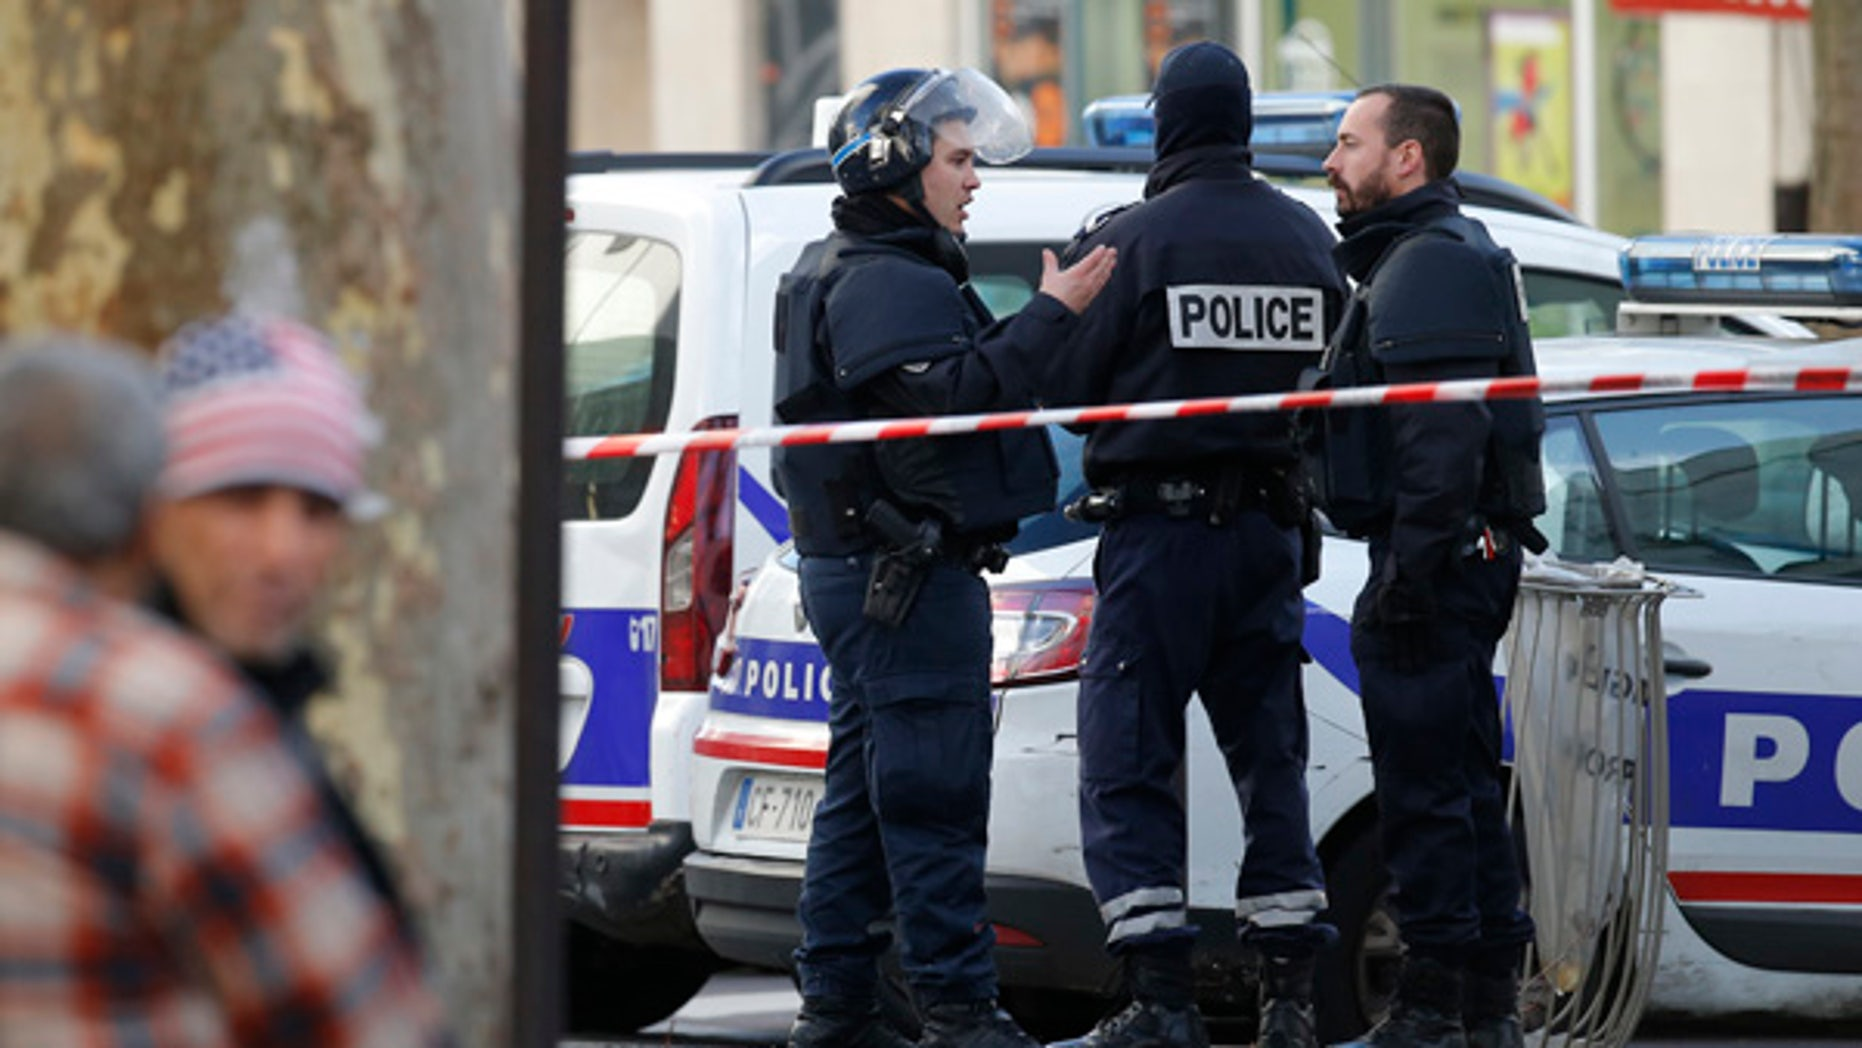 Jan. 7, 2016: Police officers secure the area after a fatal shooting took place at a police station in Paris.